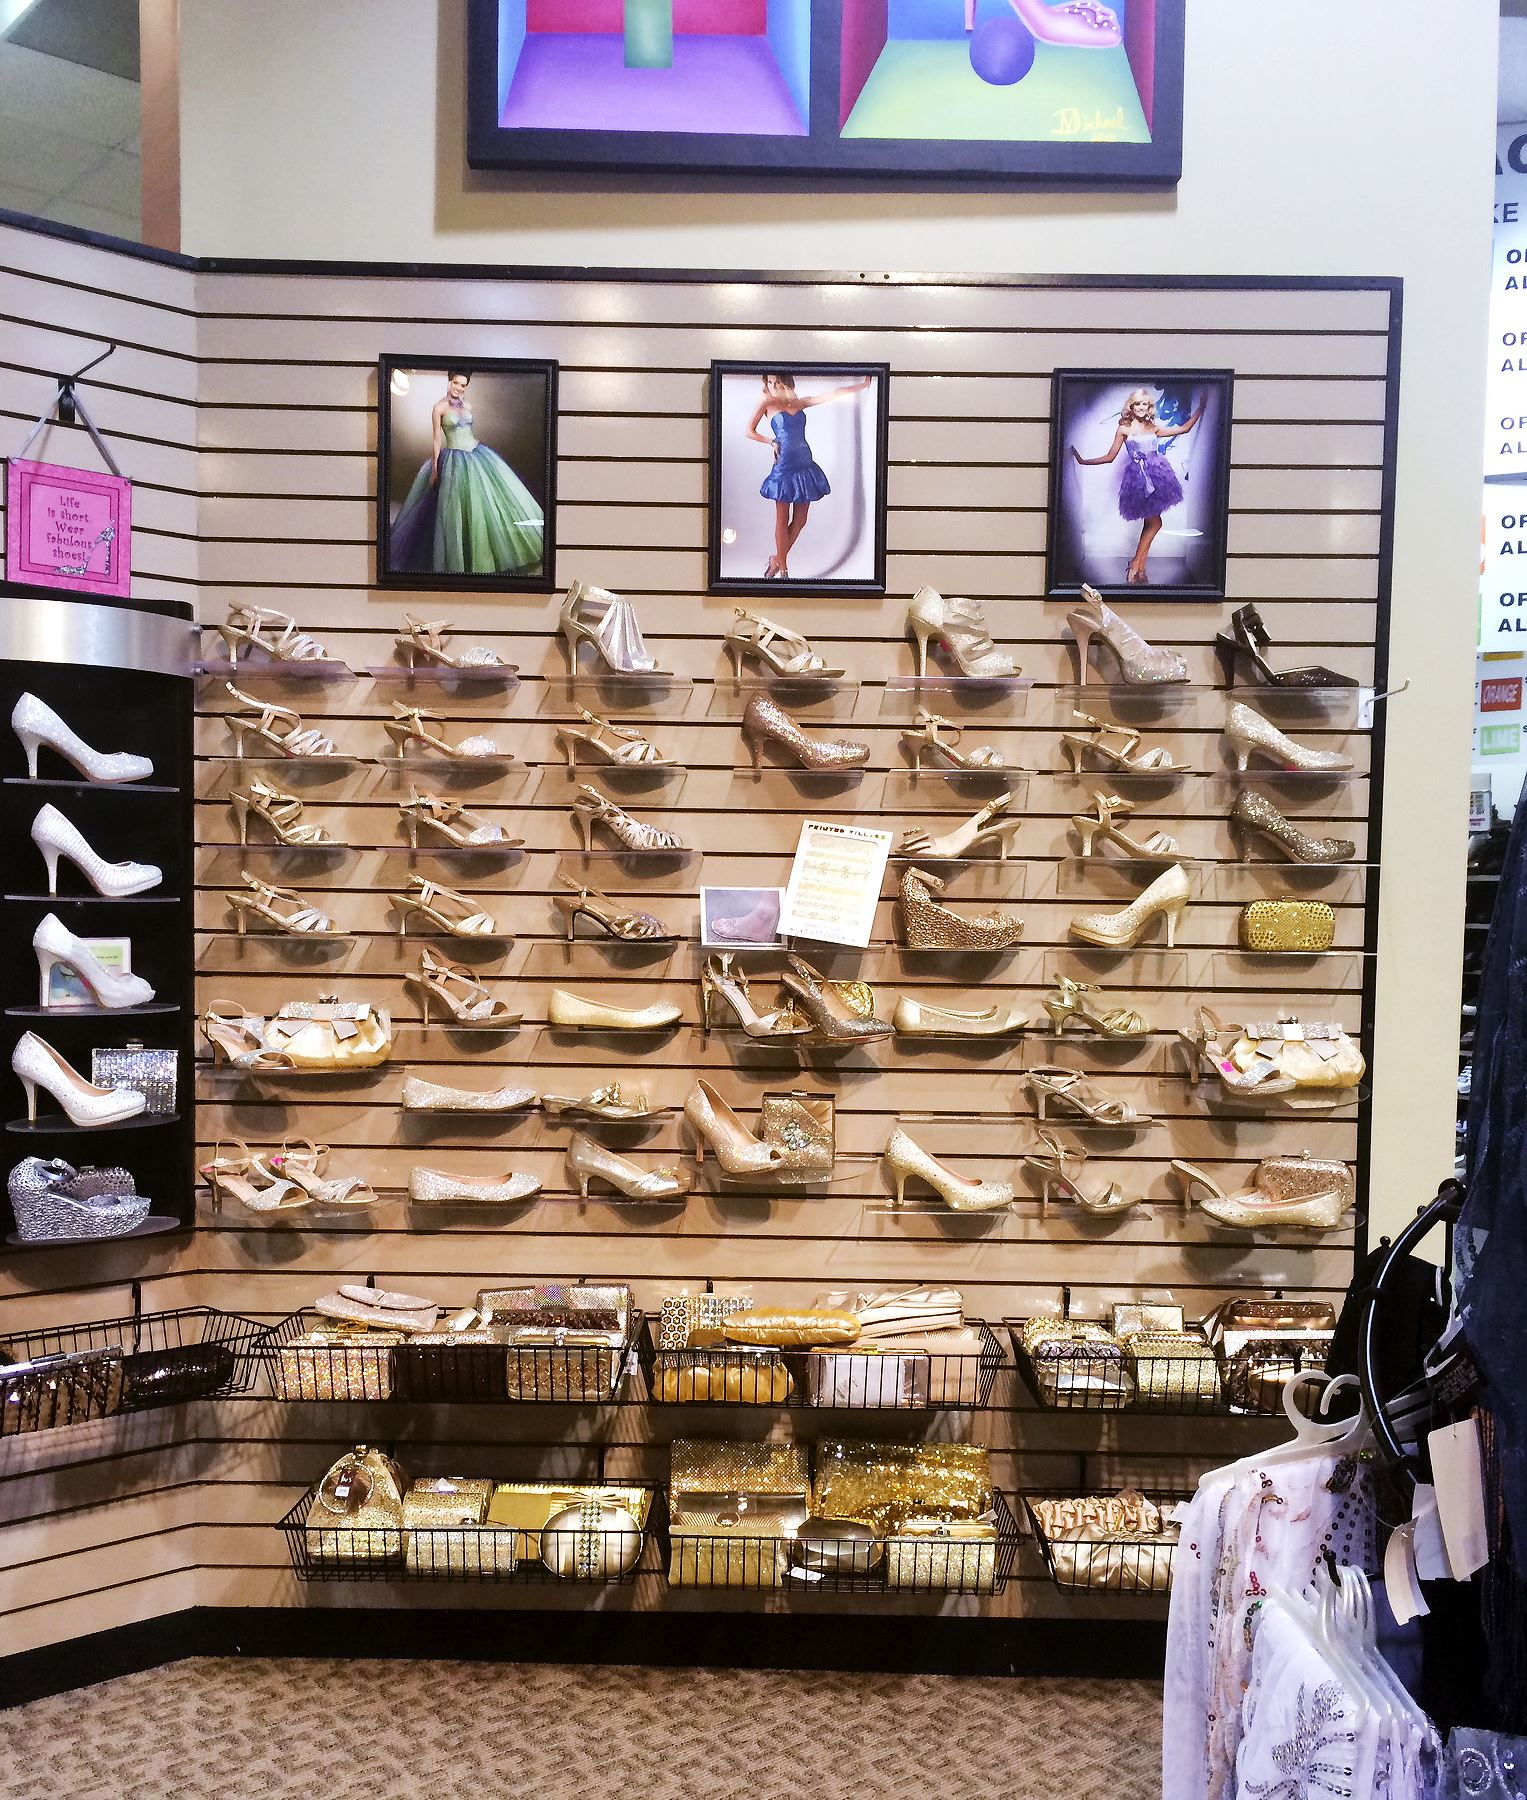 Shopping worth a drive: Stores in Sewickley and Sharon beckon browsers